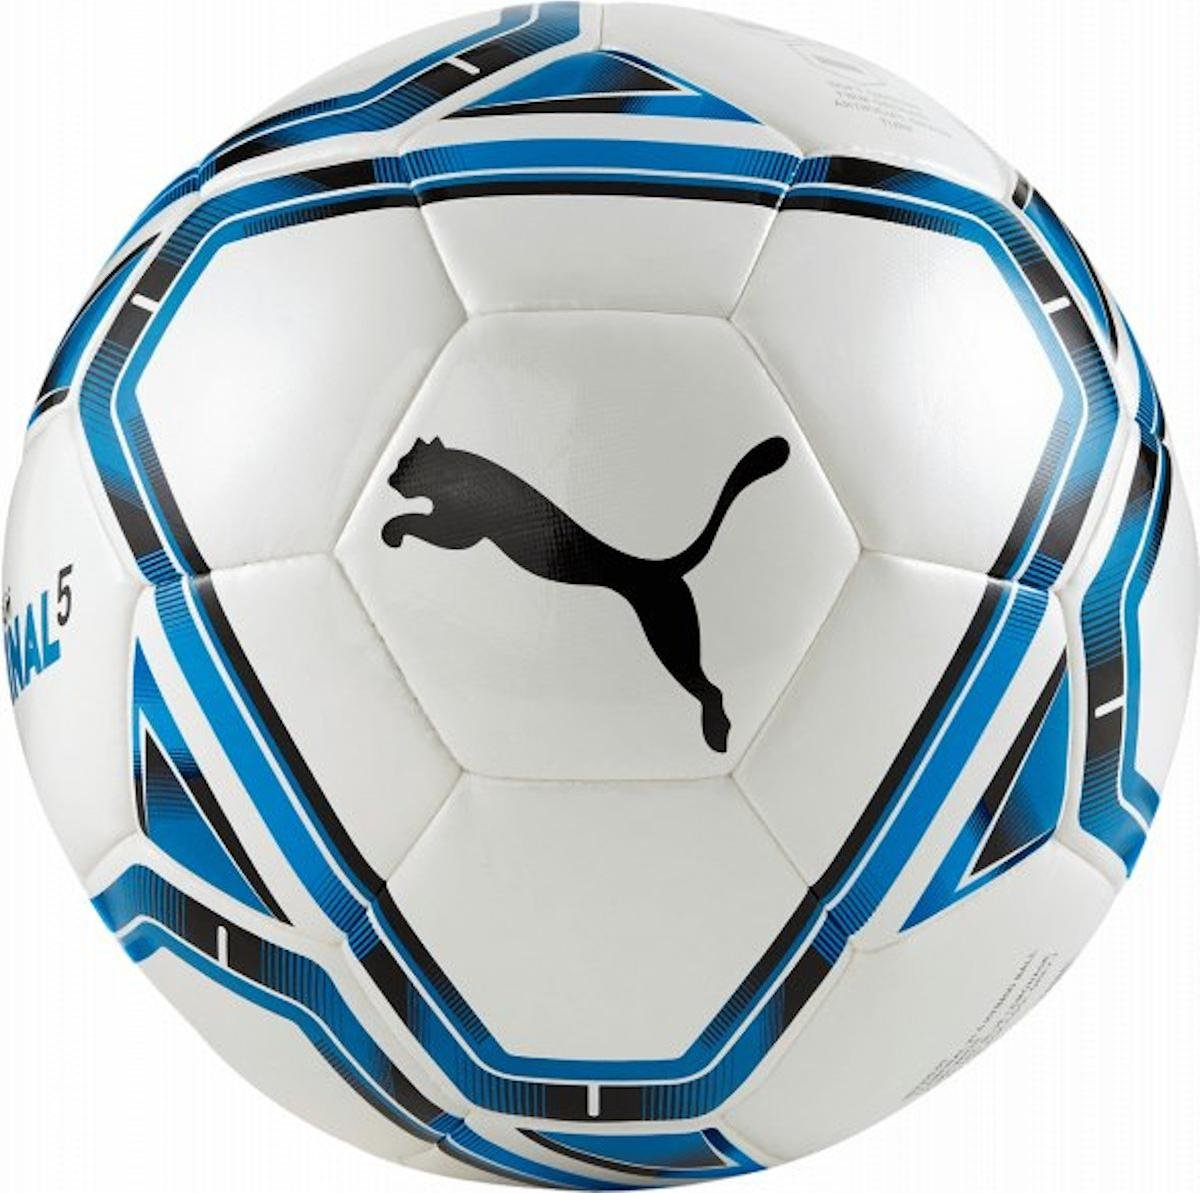 Ball Puma teamFINAL 21.5. Hybrid Ball